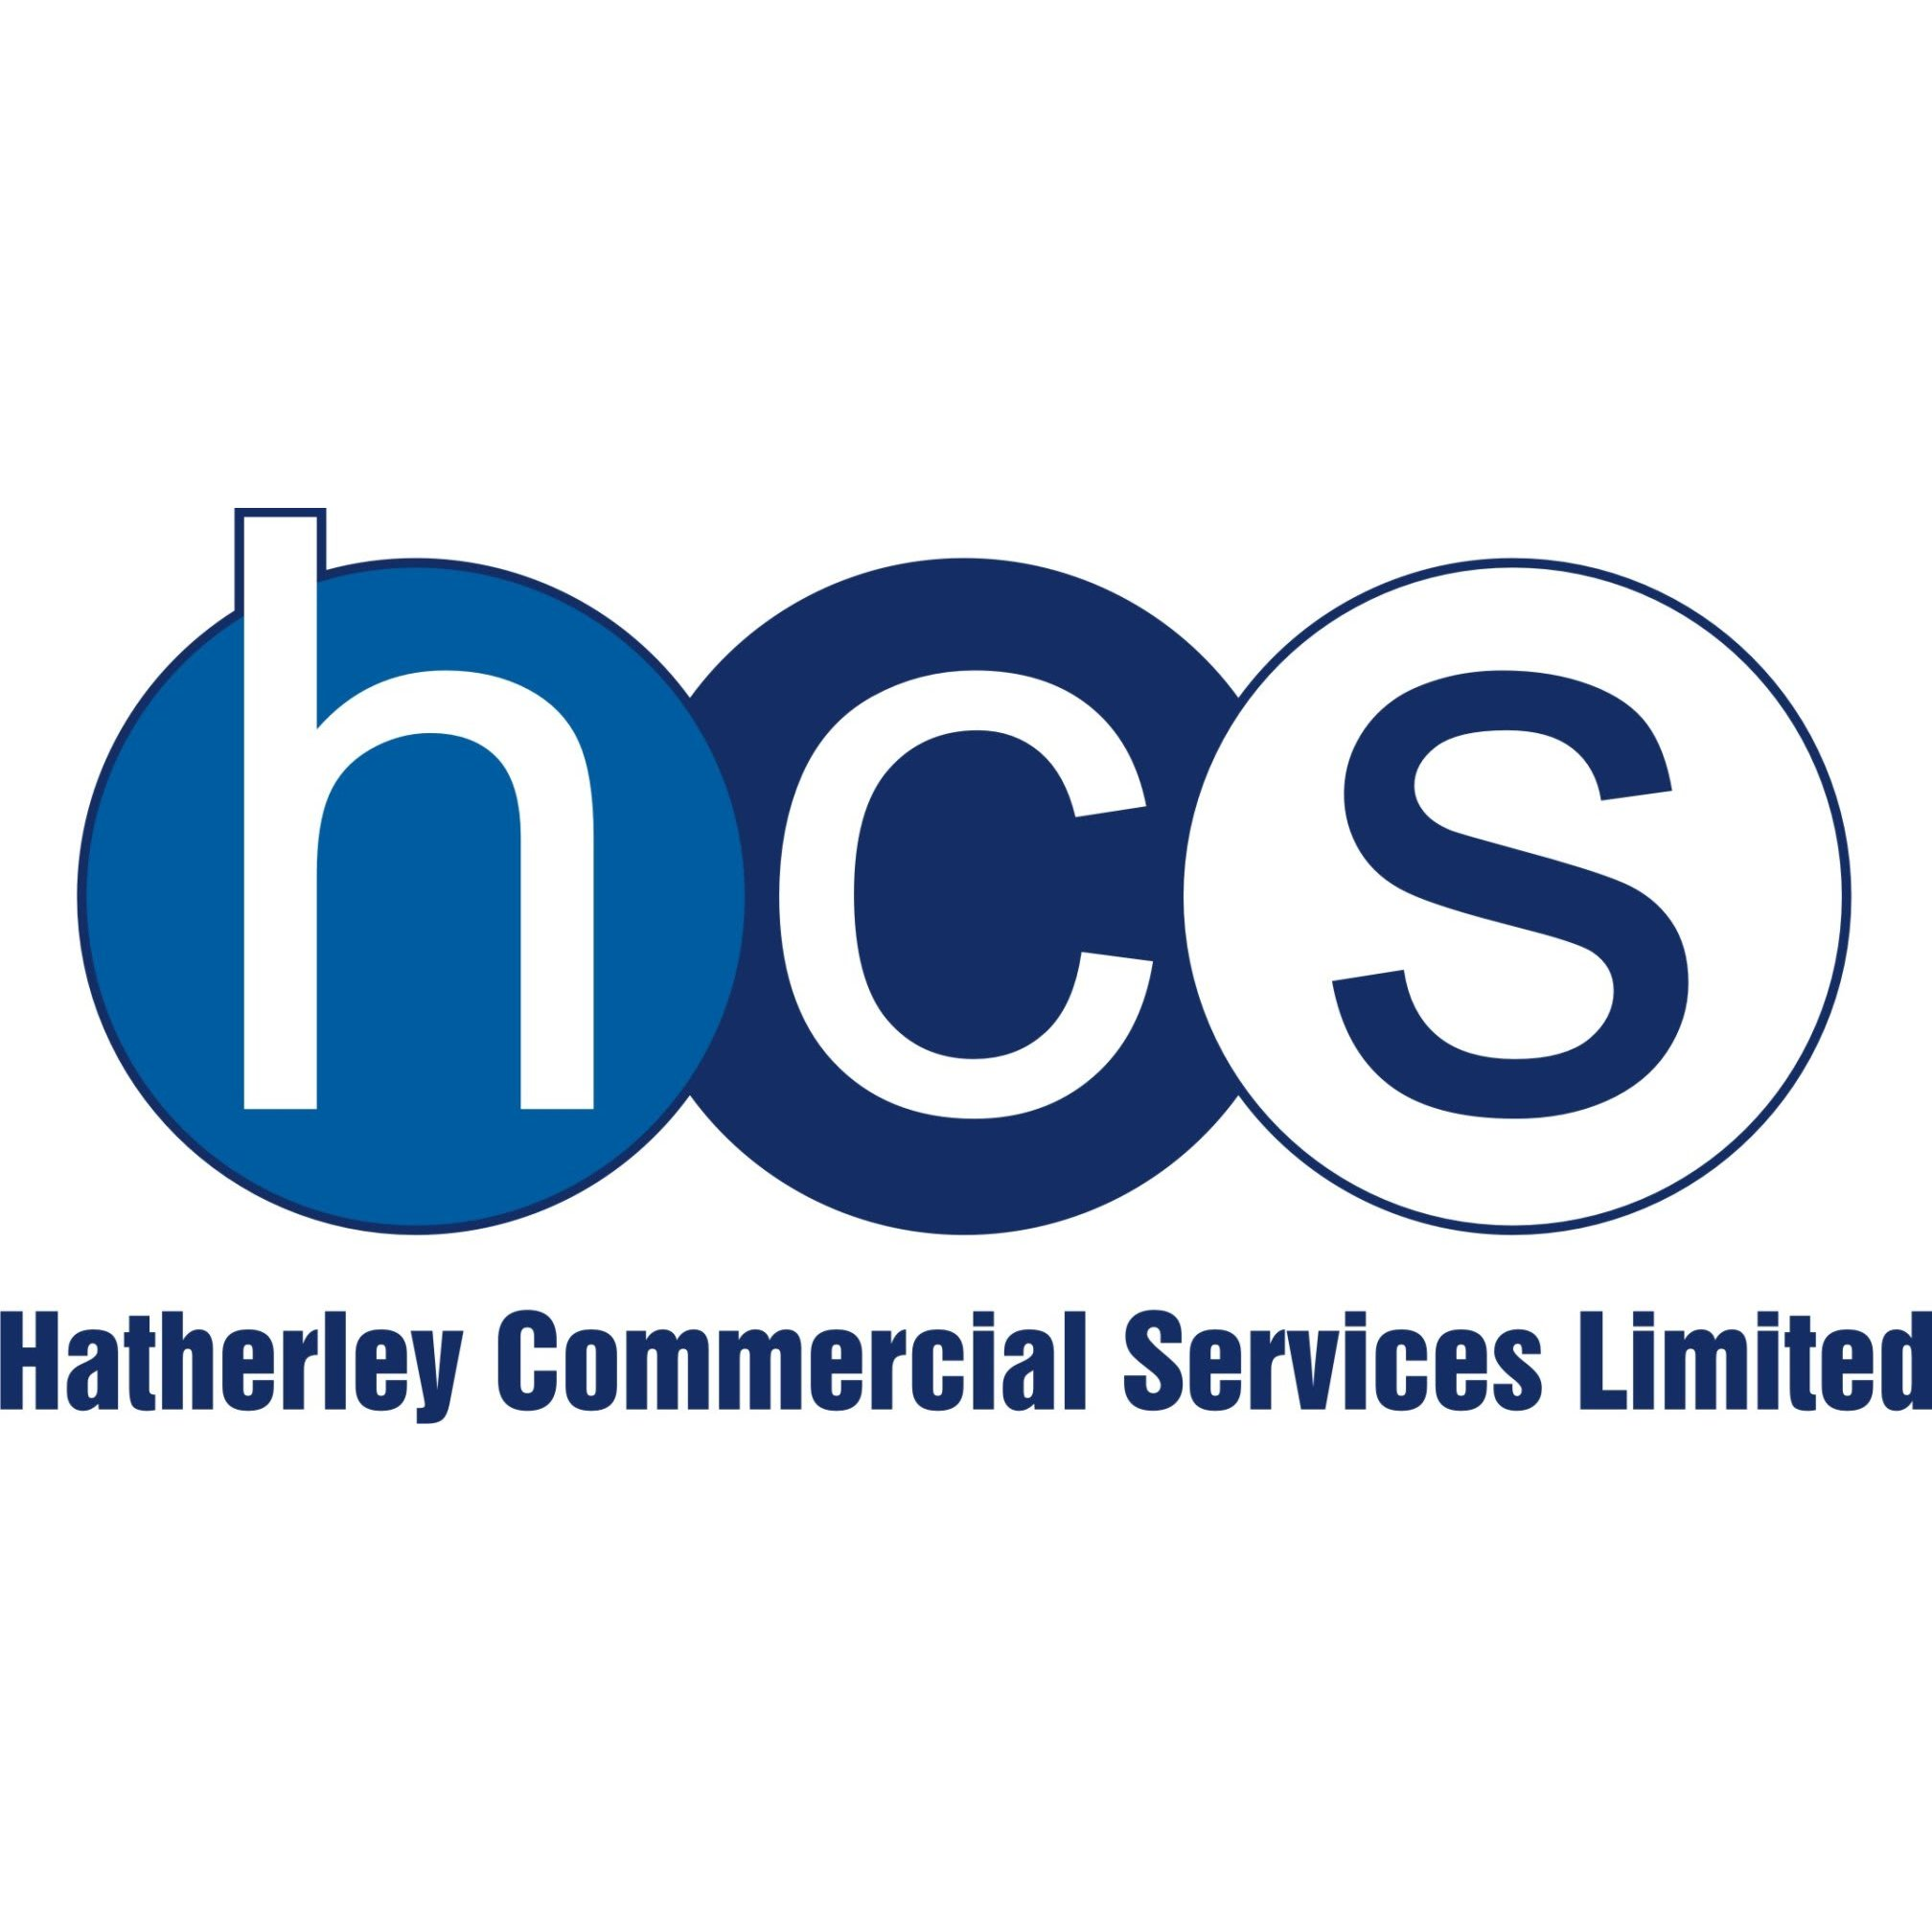 Hatherley Commercial Services Ltd